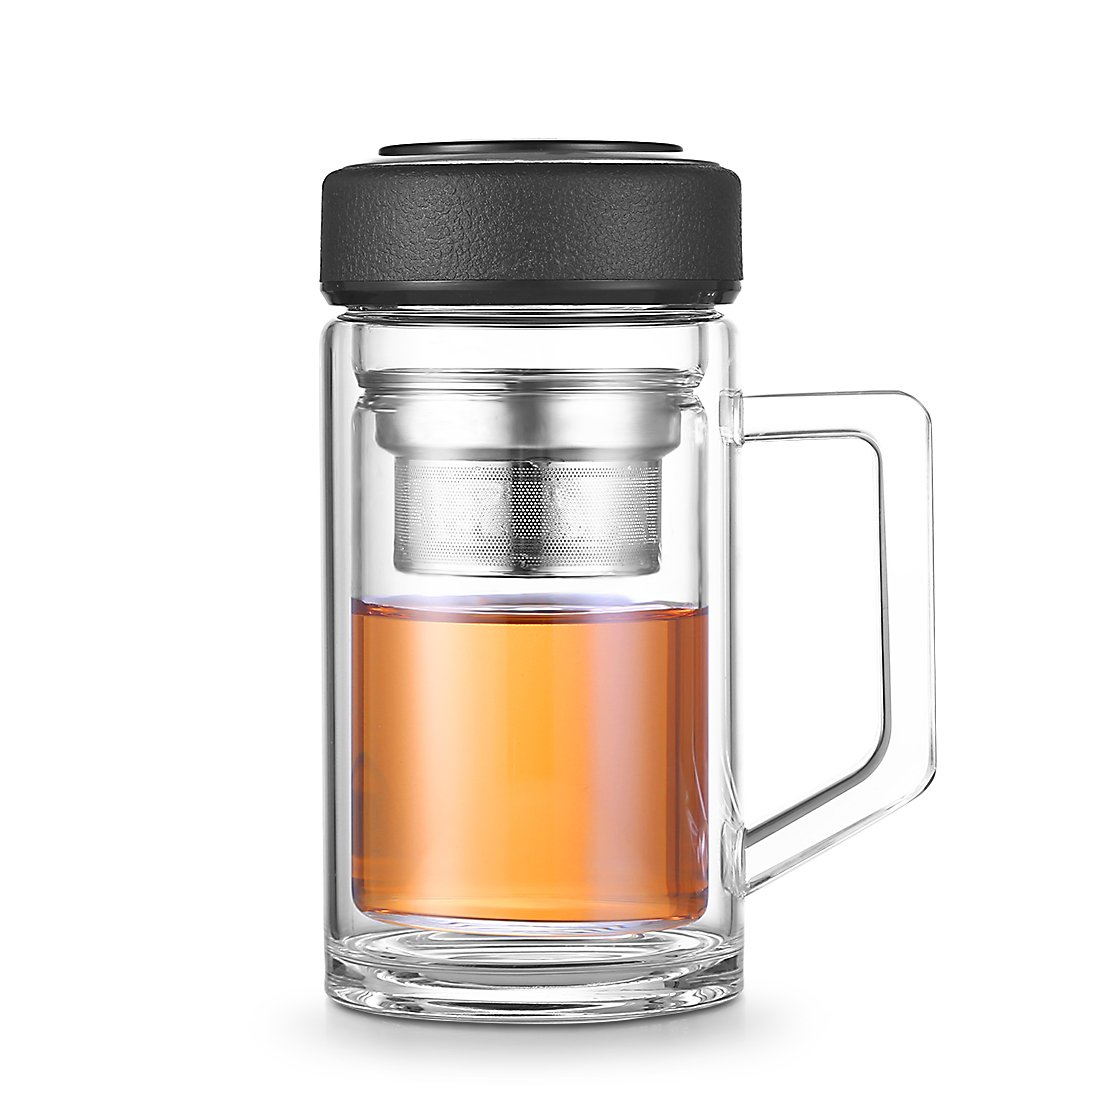 Glass Tea Mug with Infuser Handle leather Lid - Portable Tumbler With Stainless Steel Strainer for Tea and Fruit - Double Wall Glass, 12 Oz DHTUS674 (Black)